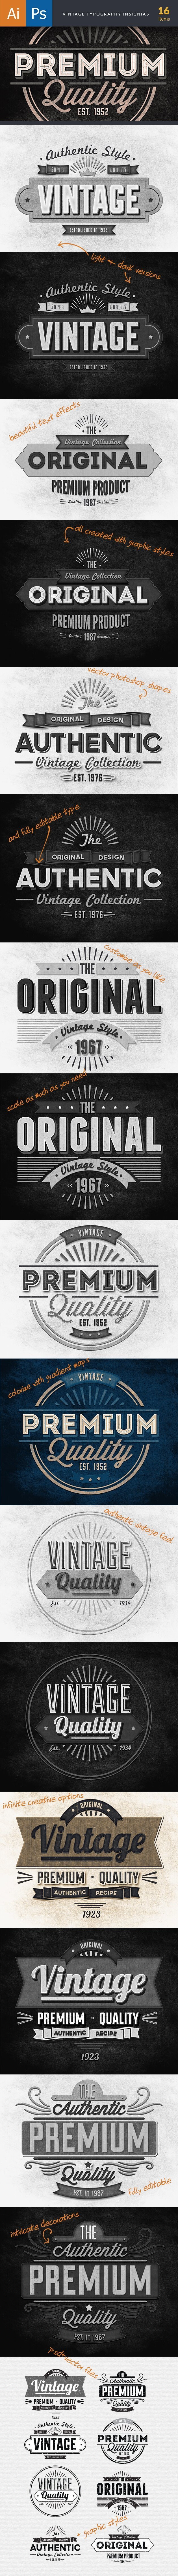 TypeZilla 3: The Super Premium Vintage Typography Set 10